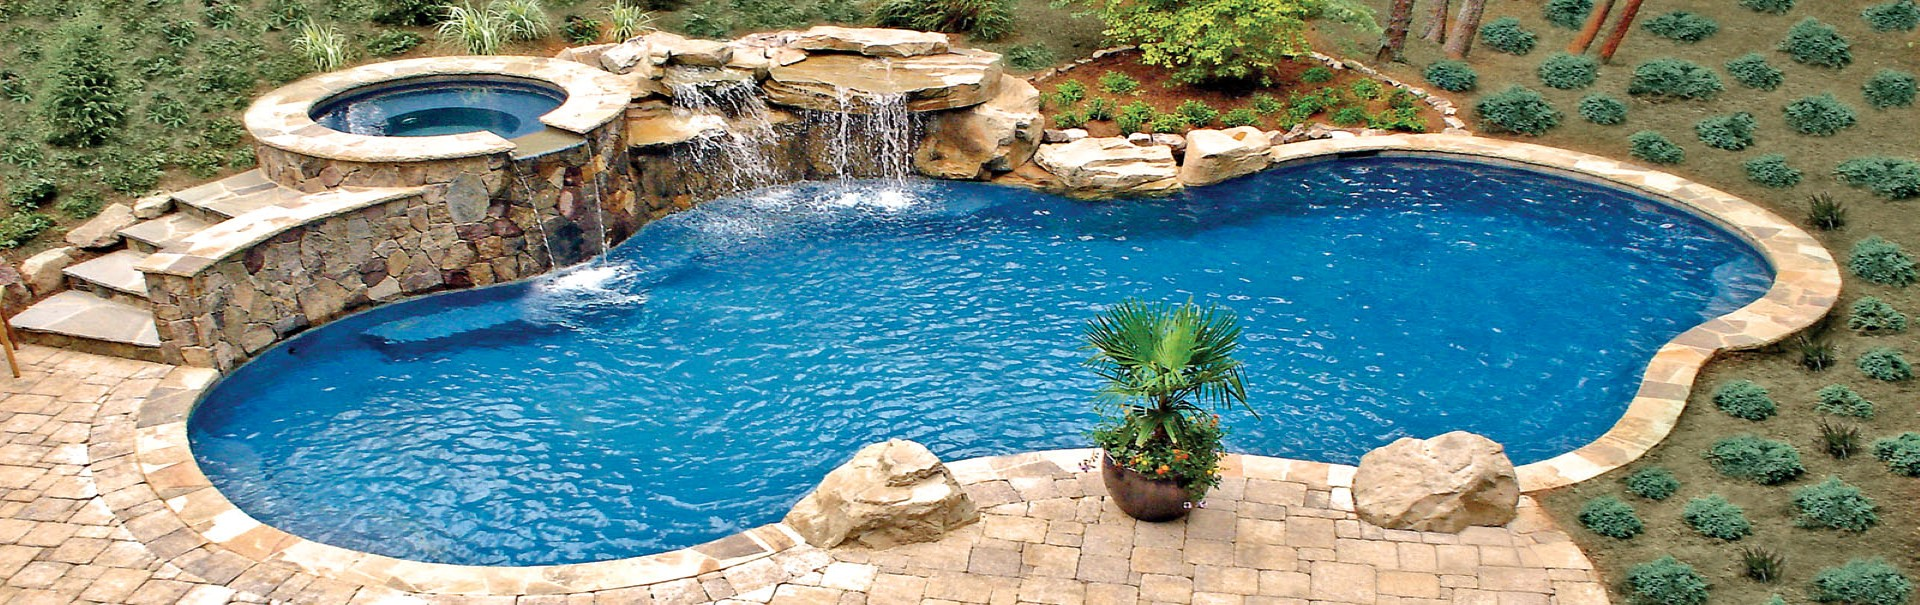 Greenville Pool Builder Spartanbarg Pool Builder Upstate